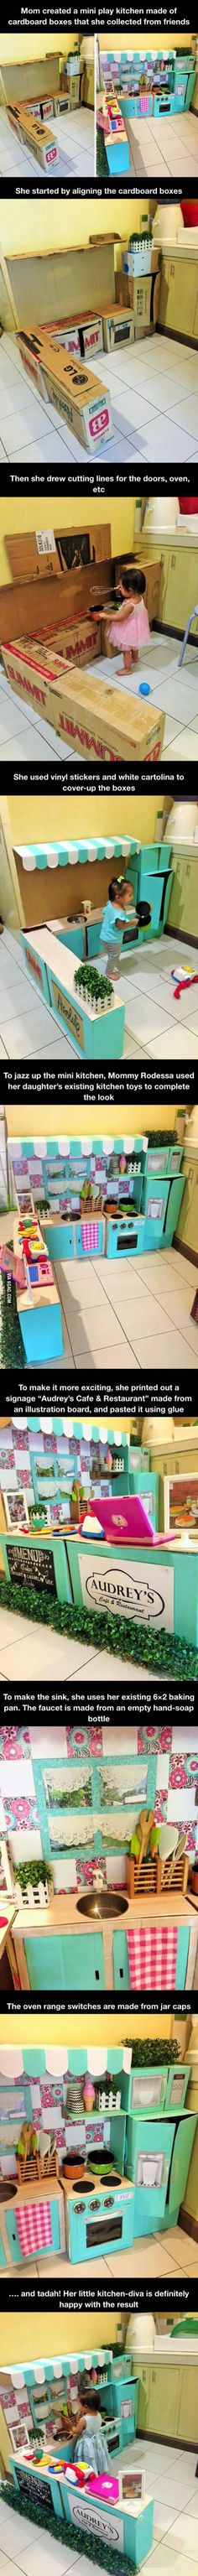 This Mom Created A Mini Play Kitchen Made Of Cardboard Boxes For Her Toddler is part of Cardboard crafts Kitchen - More memes, funny videos and pics on Cardboard Kitchen, Cardboard Box Crafts, Cardboard Playhouse, Cardboard Toys, Cardboard Furniture, Projects For Kids, Diy For Kids, Crafts For Kids, Diy Karton